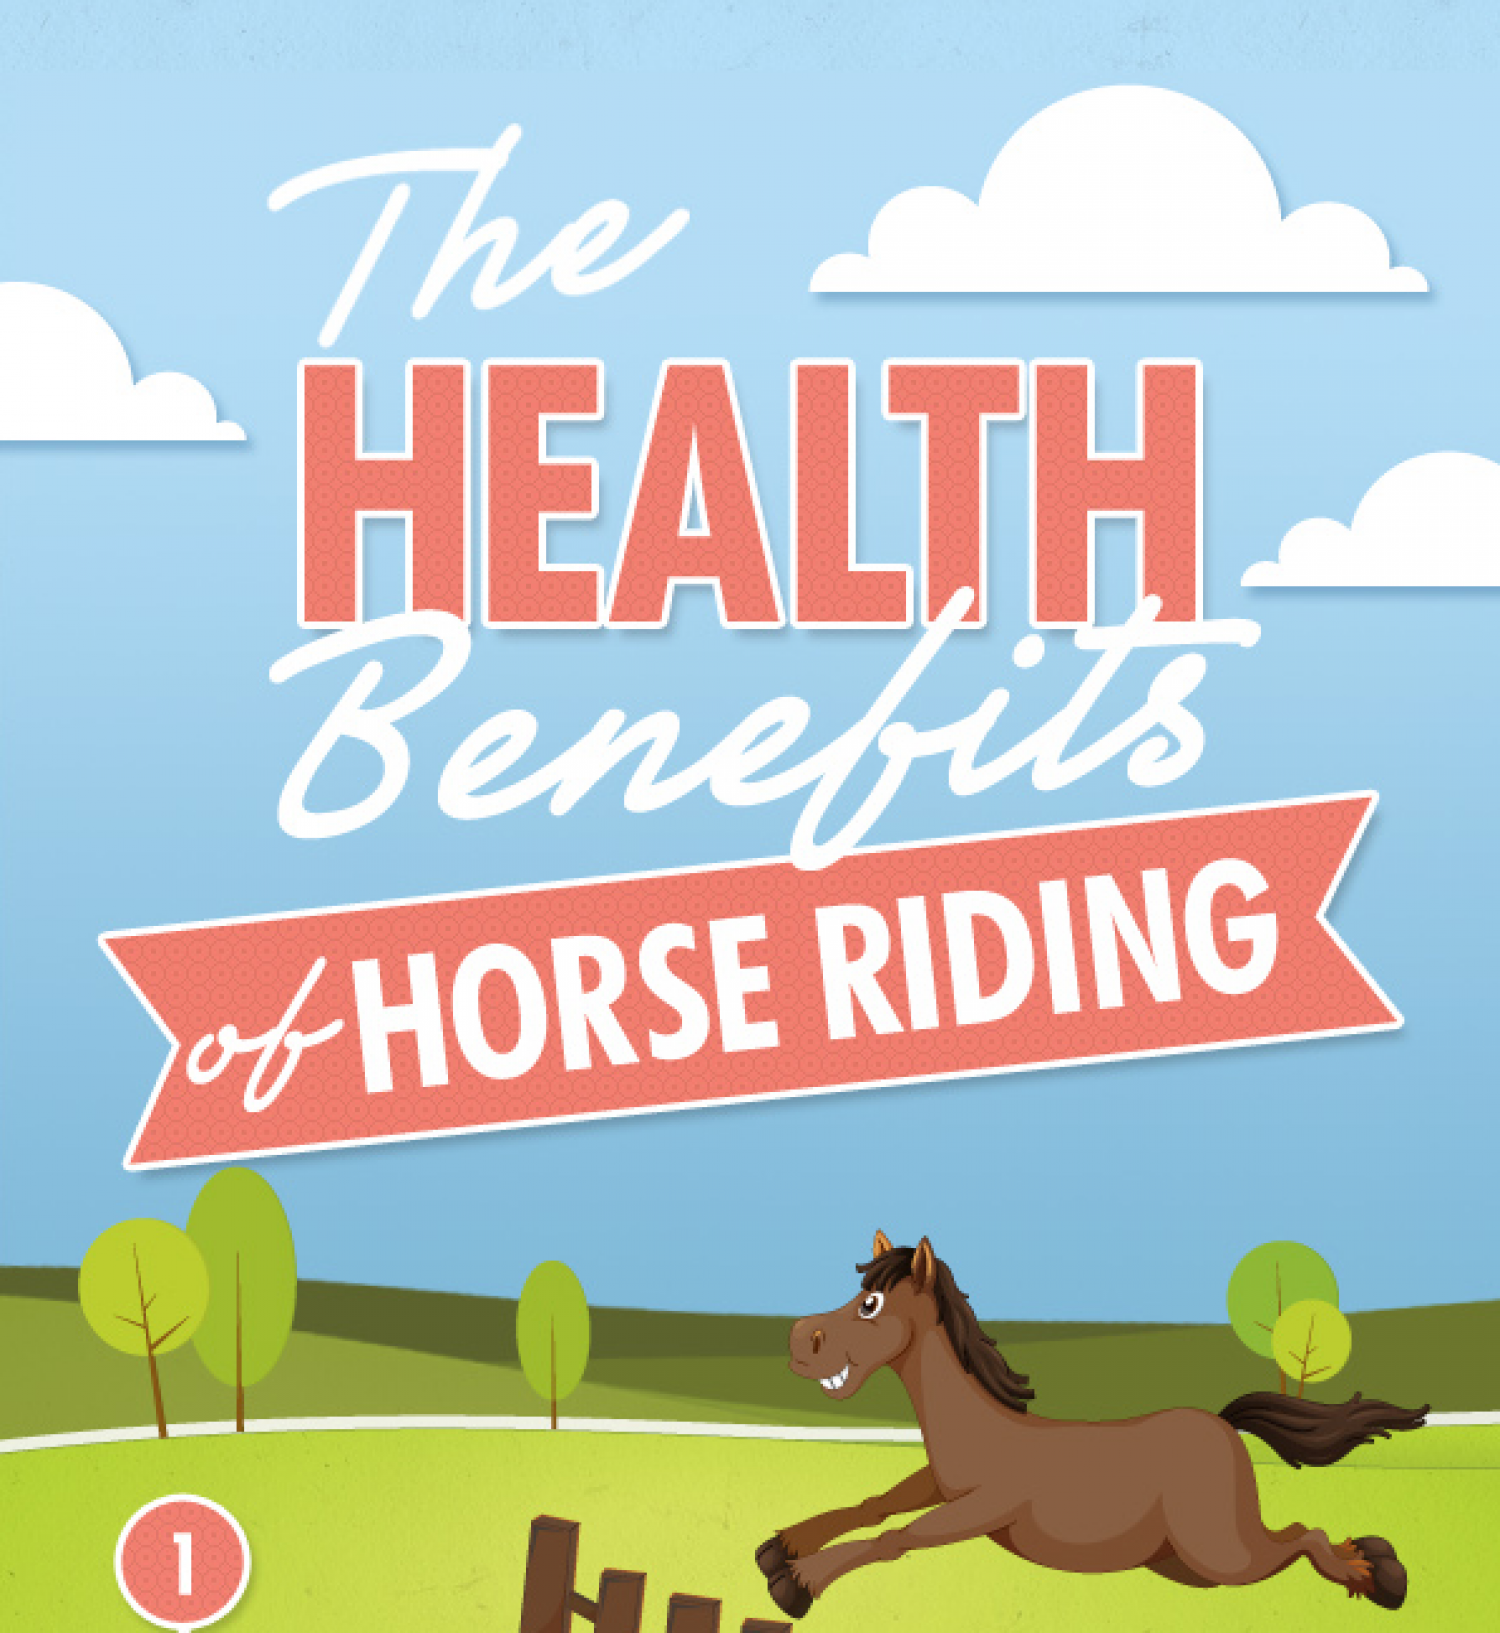 The Health Benefits Of Horse Riding Infographic